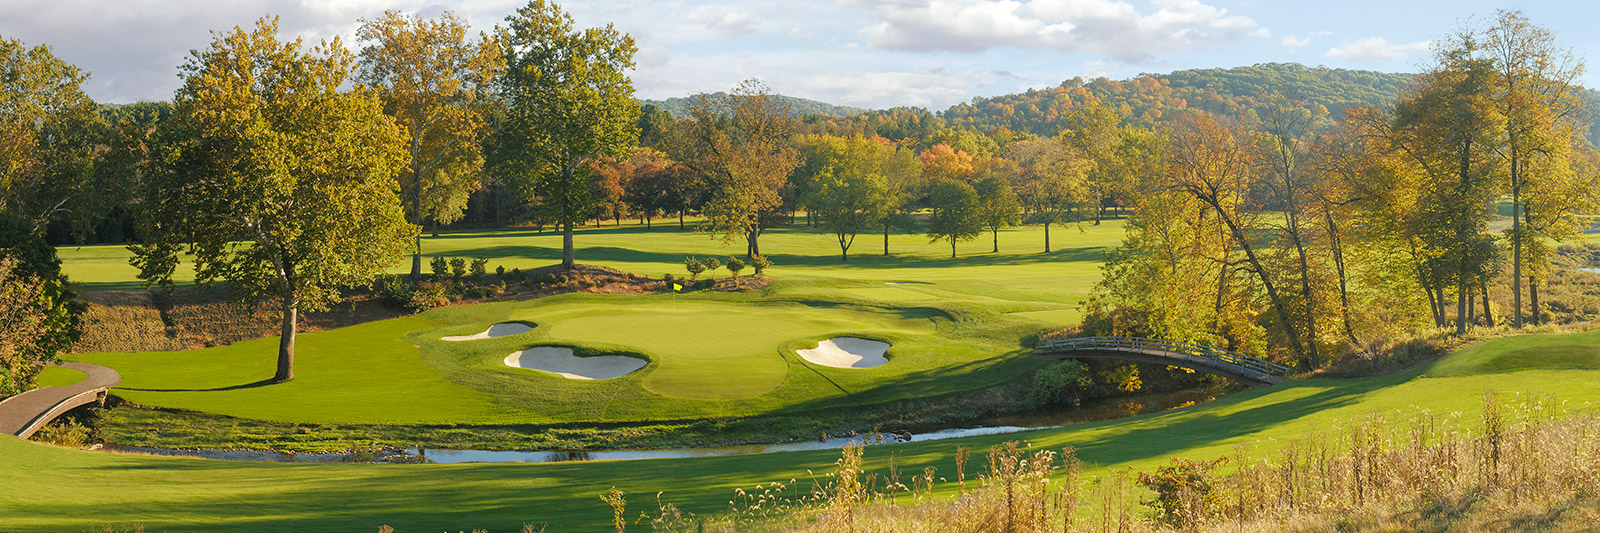 Golf Course Image - Saucon Valley Weyhill No. 16